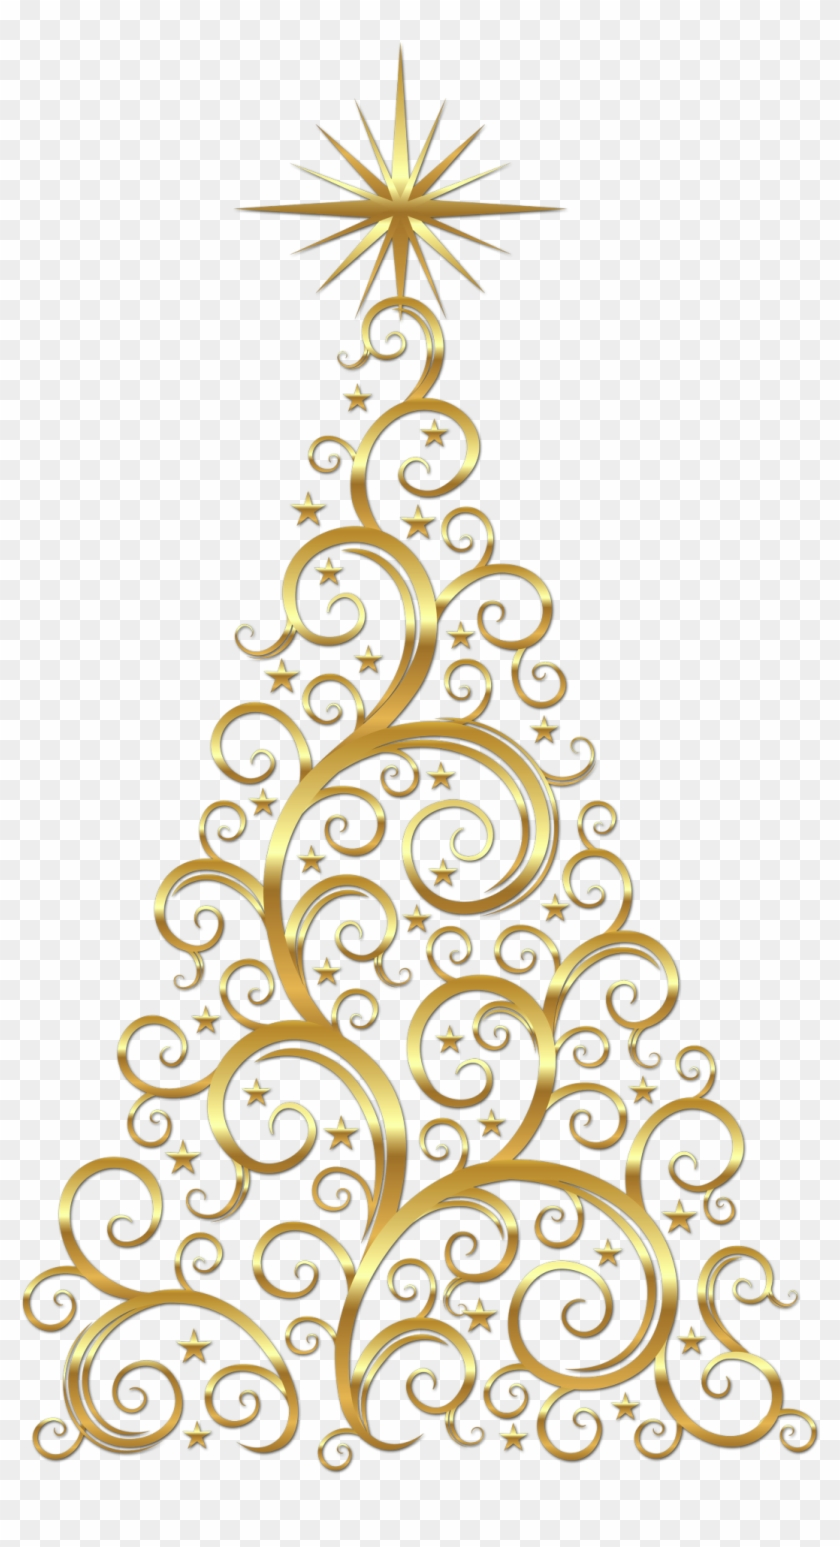 Free Snowy Christmas Tree Clipart - Christmas Tree Canvas Sign #430757